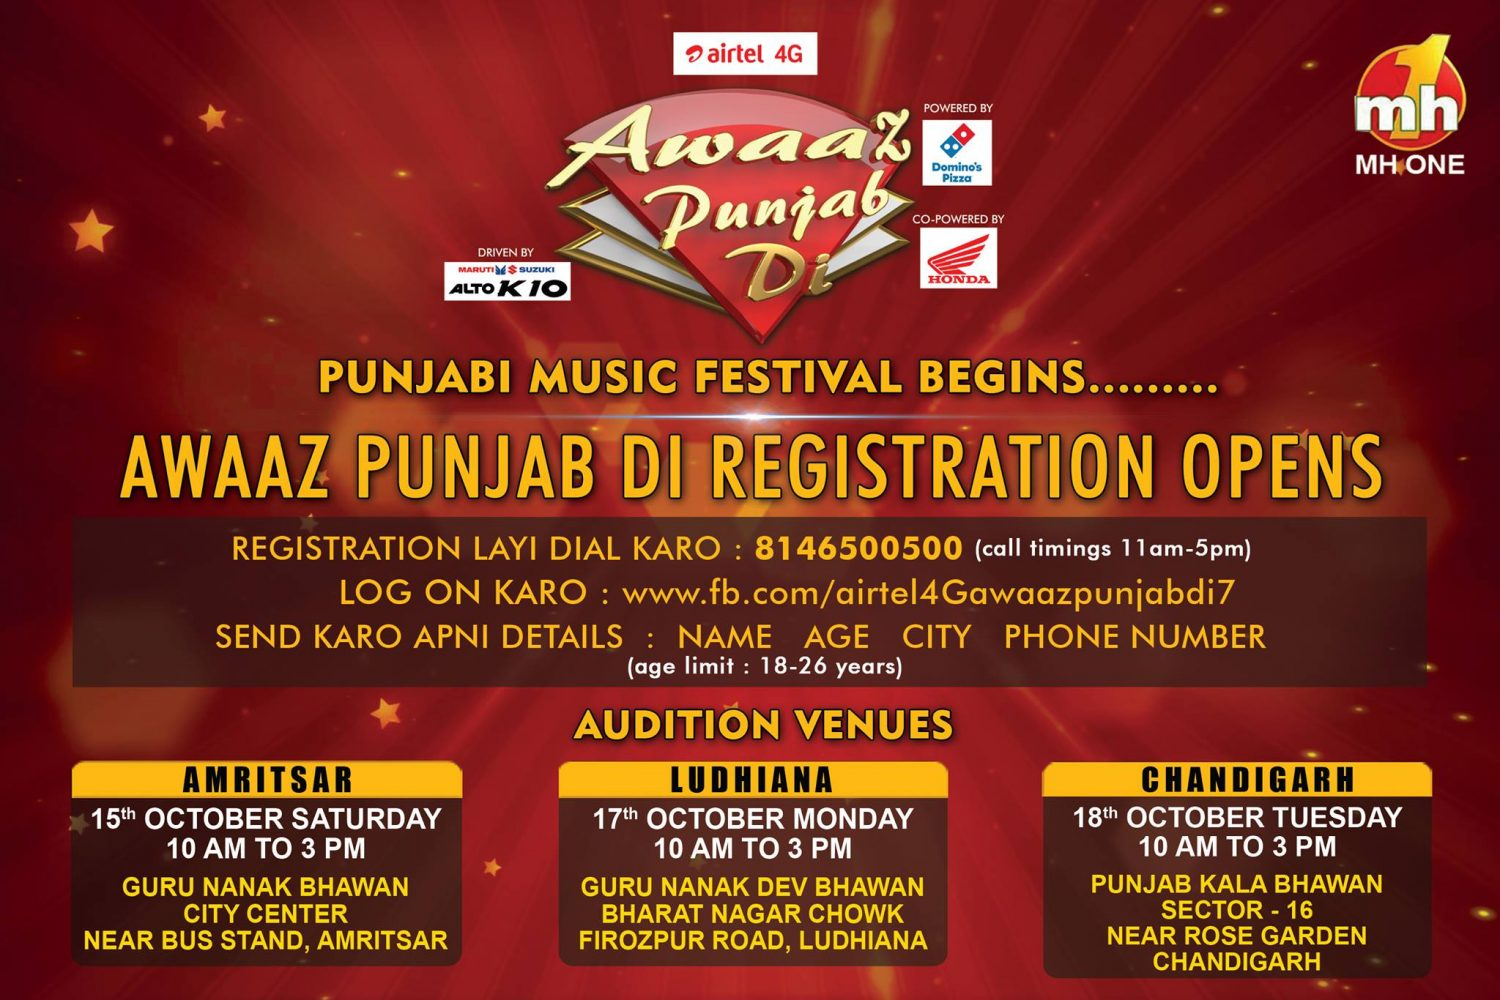 aawaz-punjab-di-2016-auditions